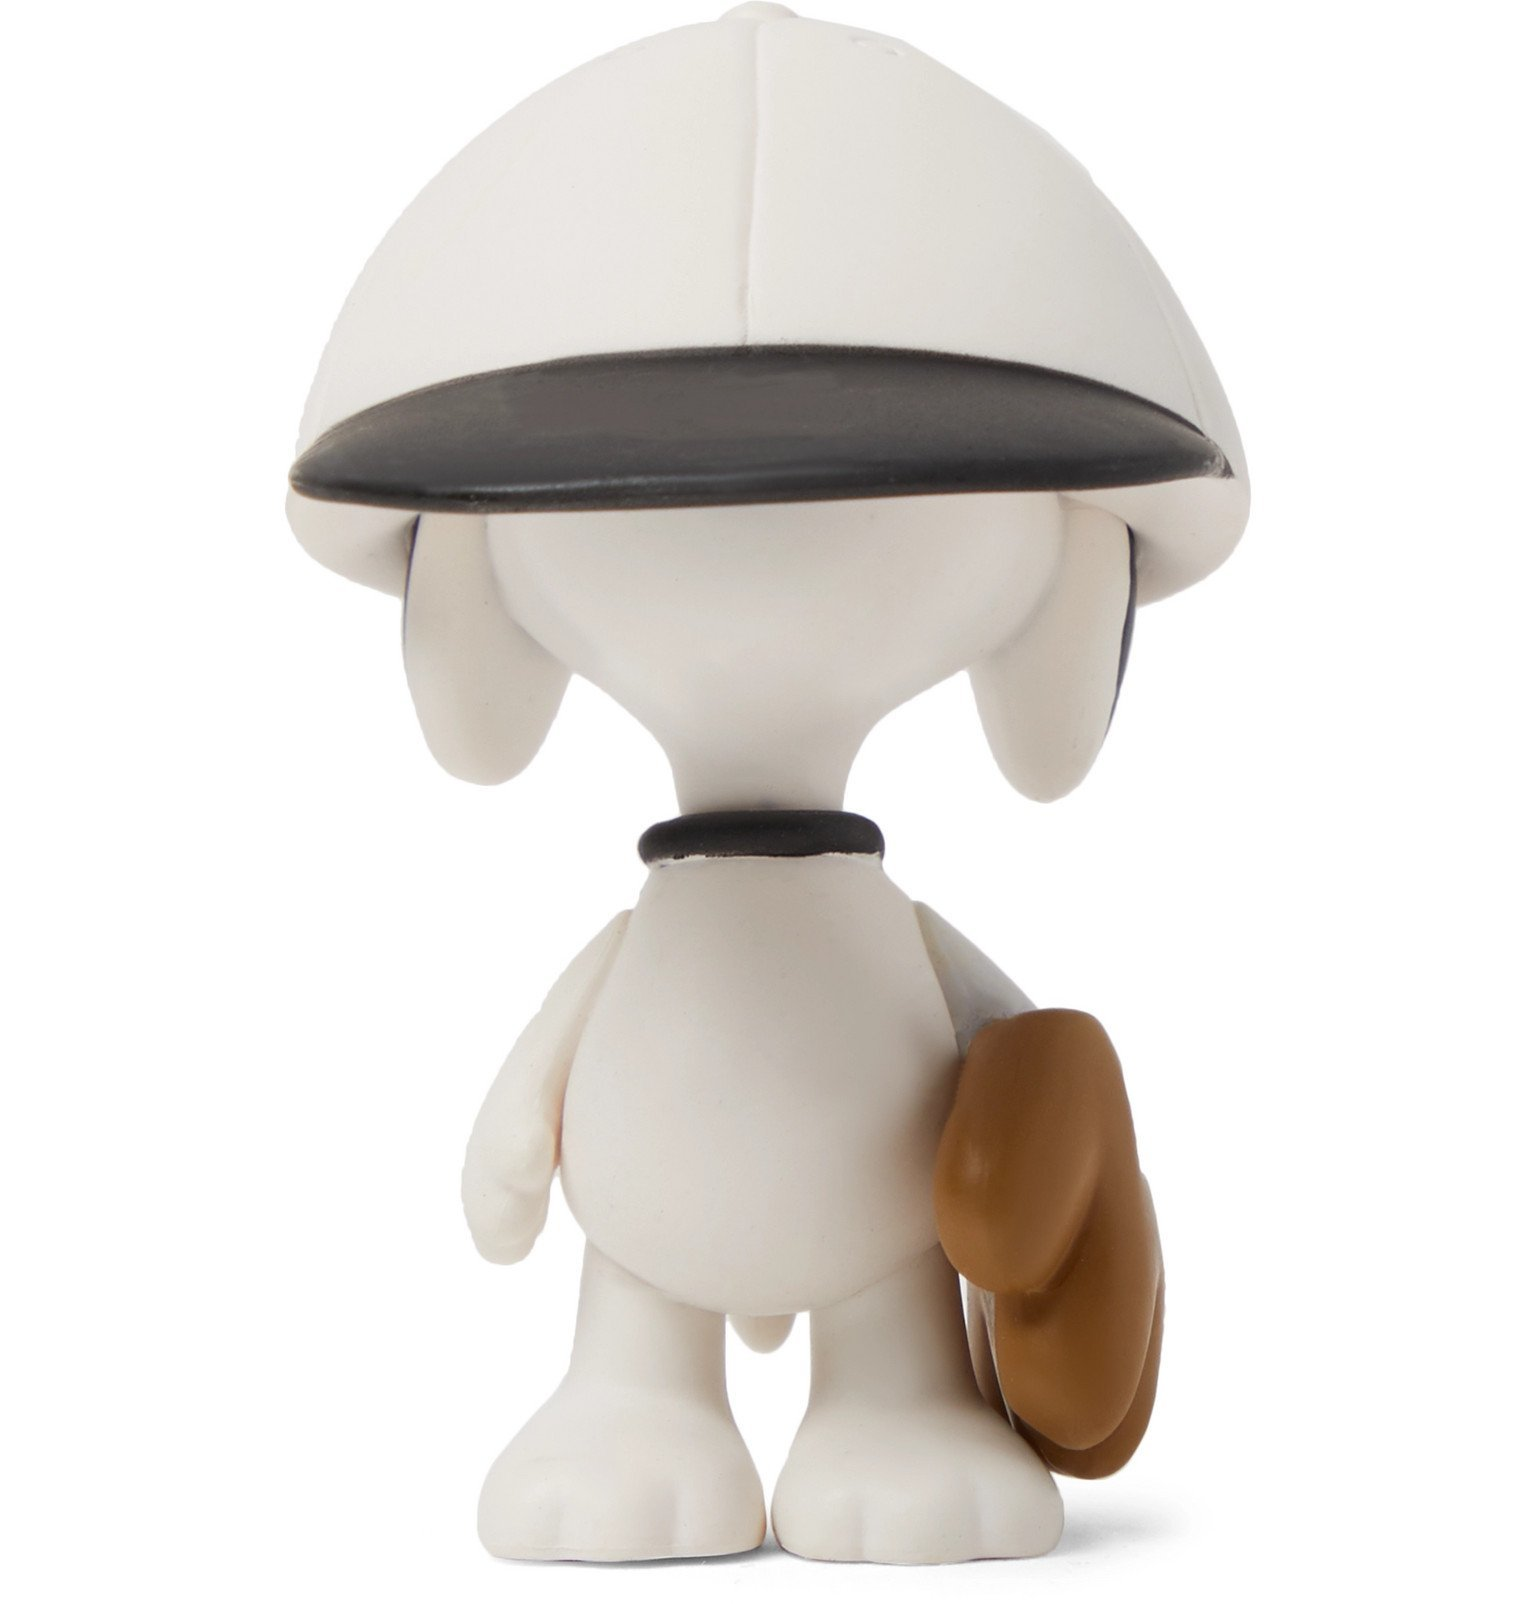 Photo: Medicom - Ultra Detail Figure Series 8 No.433 Joe Cool Snoopy with Surfboard - Multi